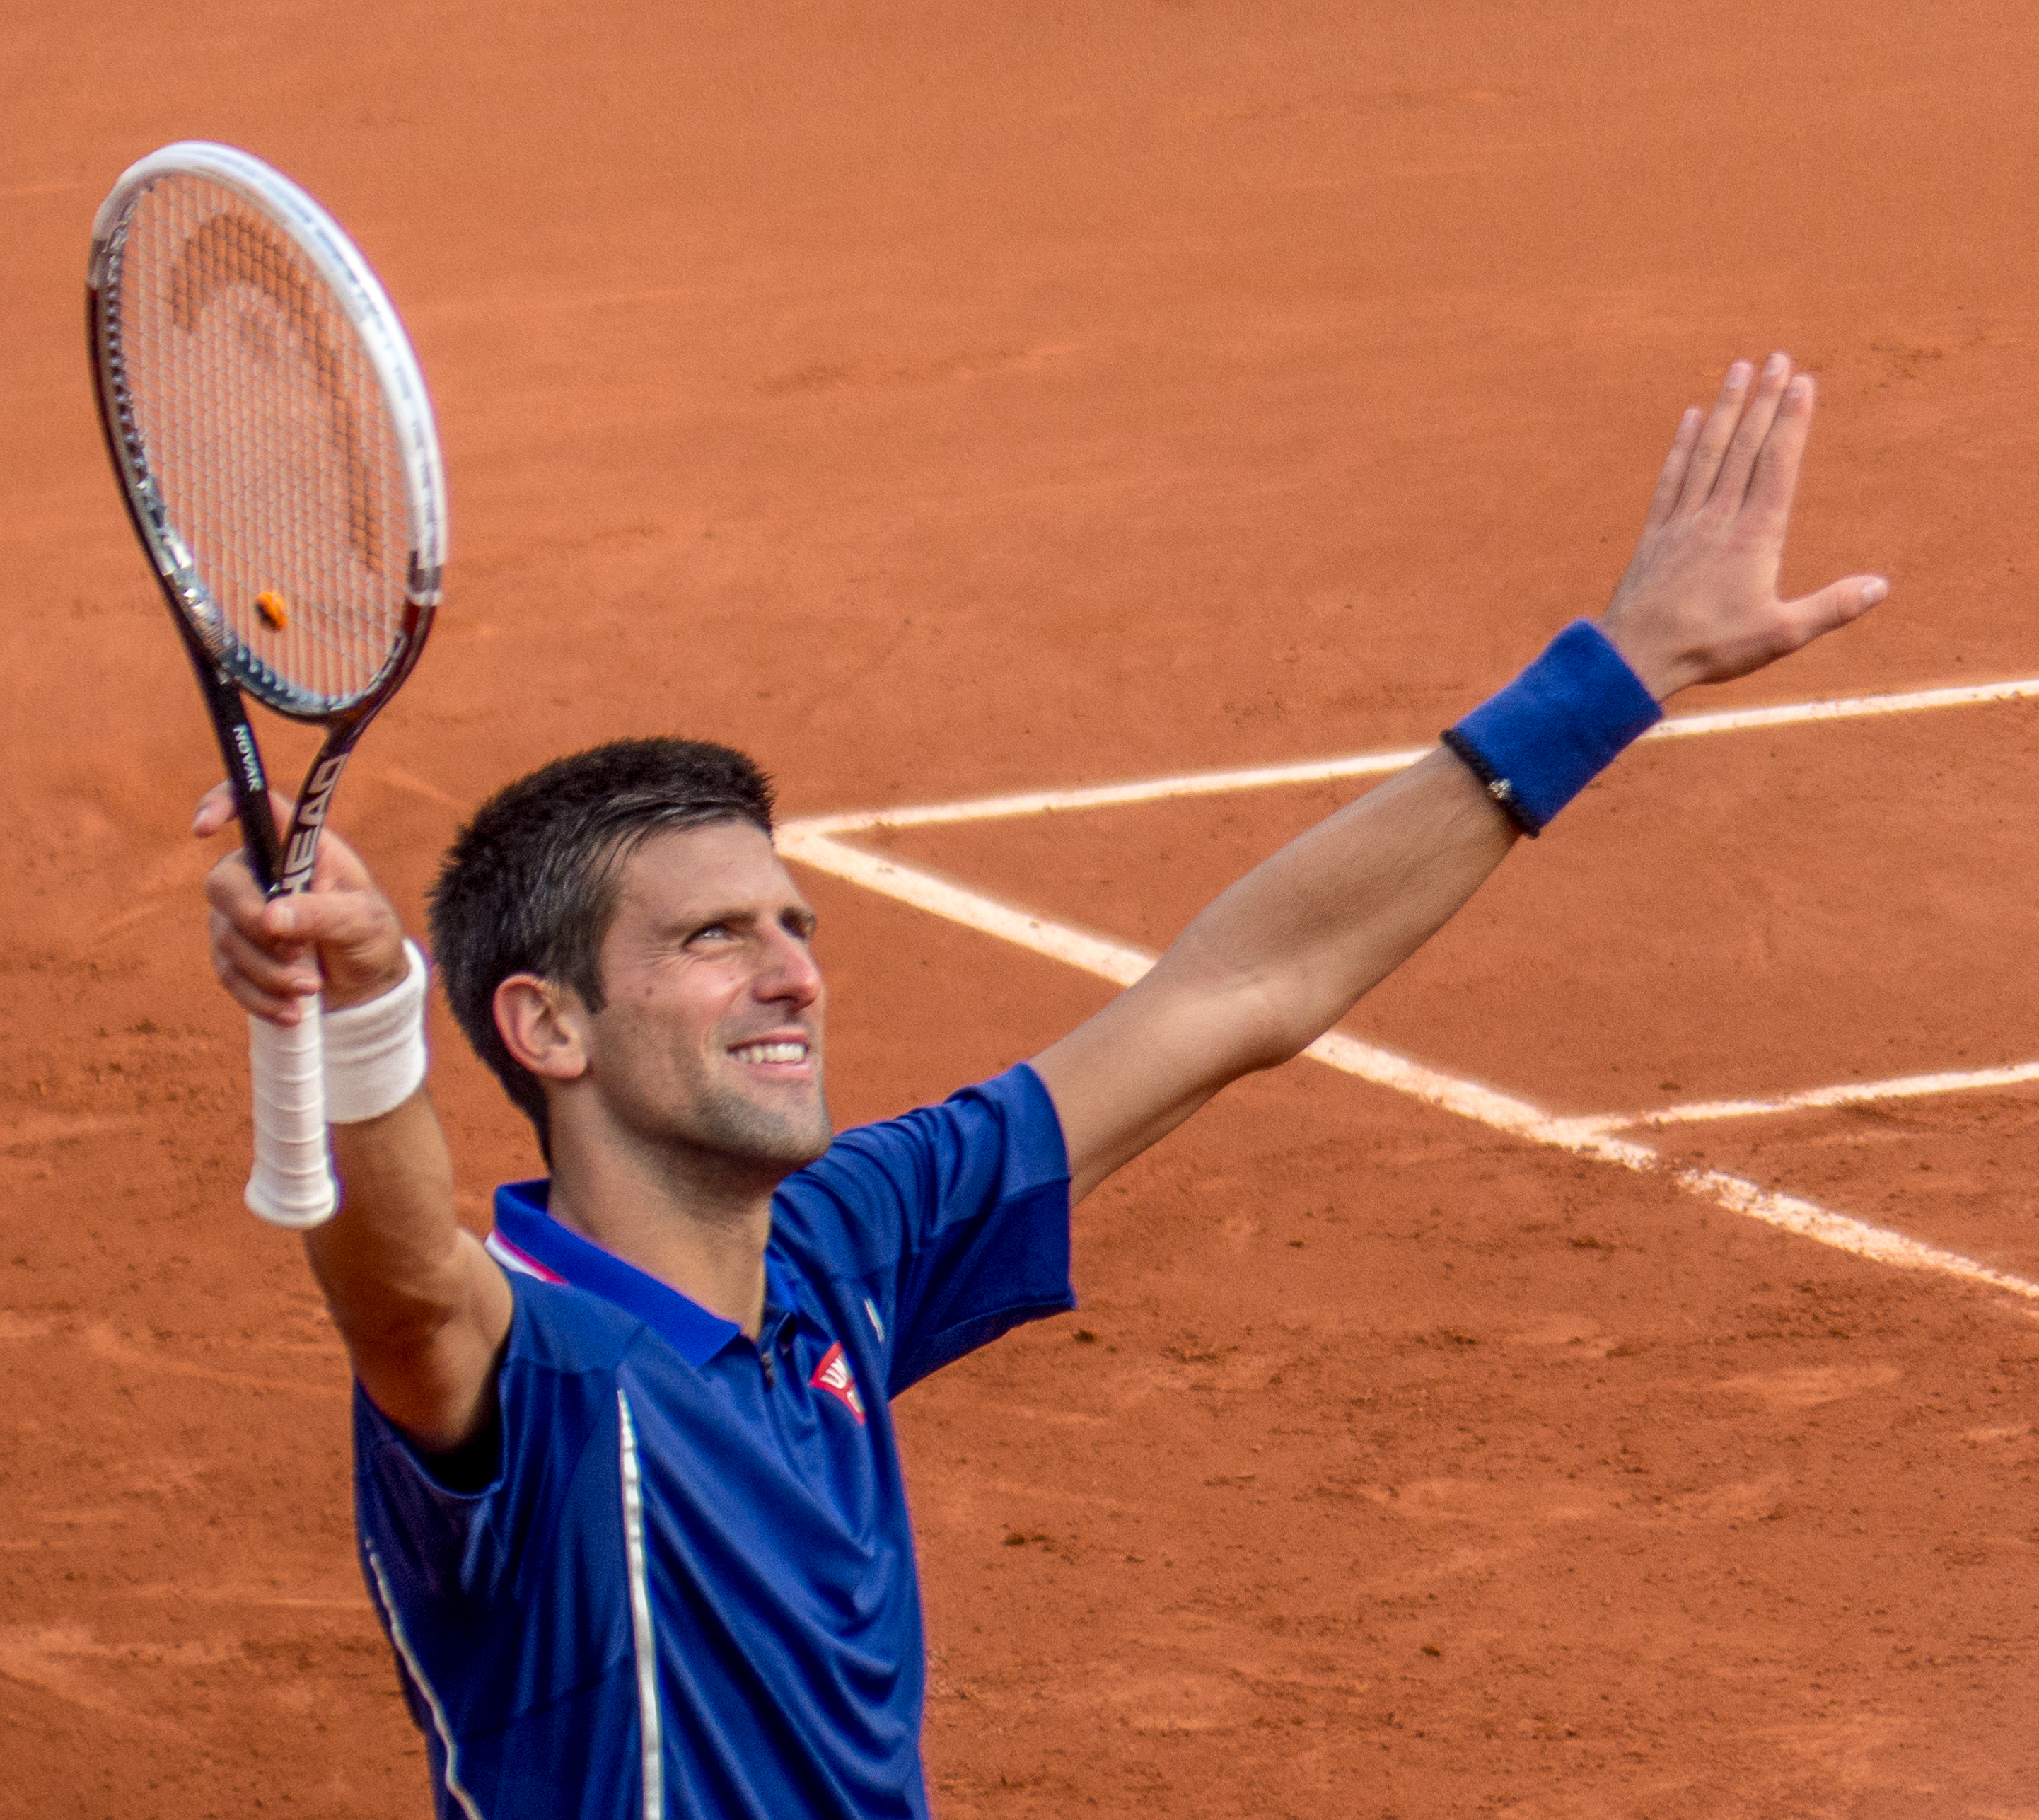 Novak Djokovic; athletics, embodyism